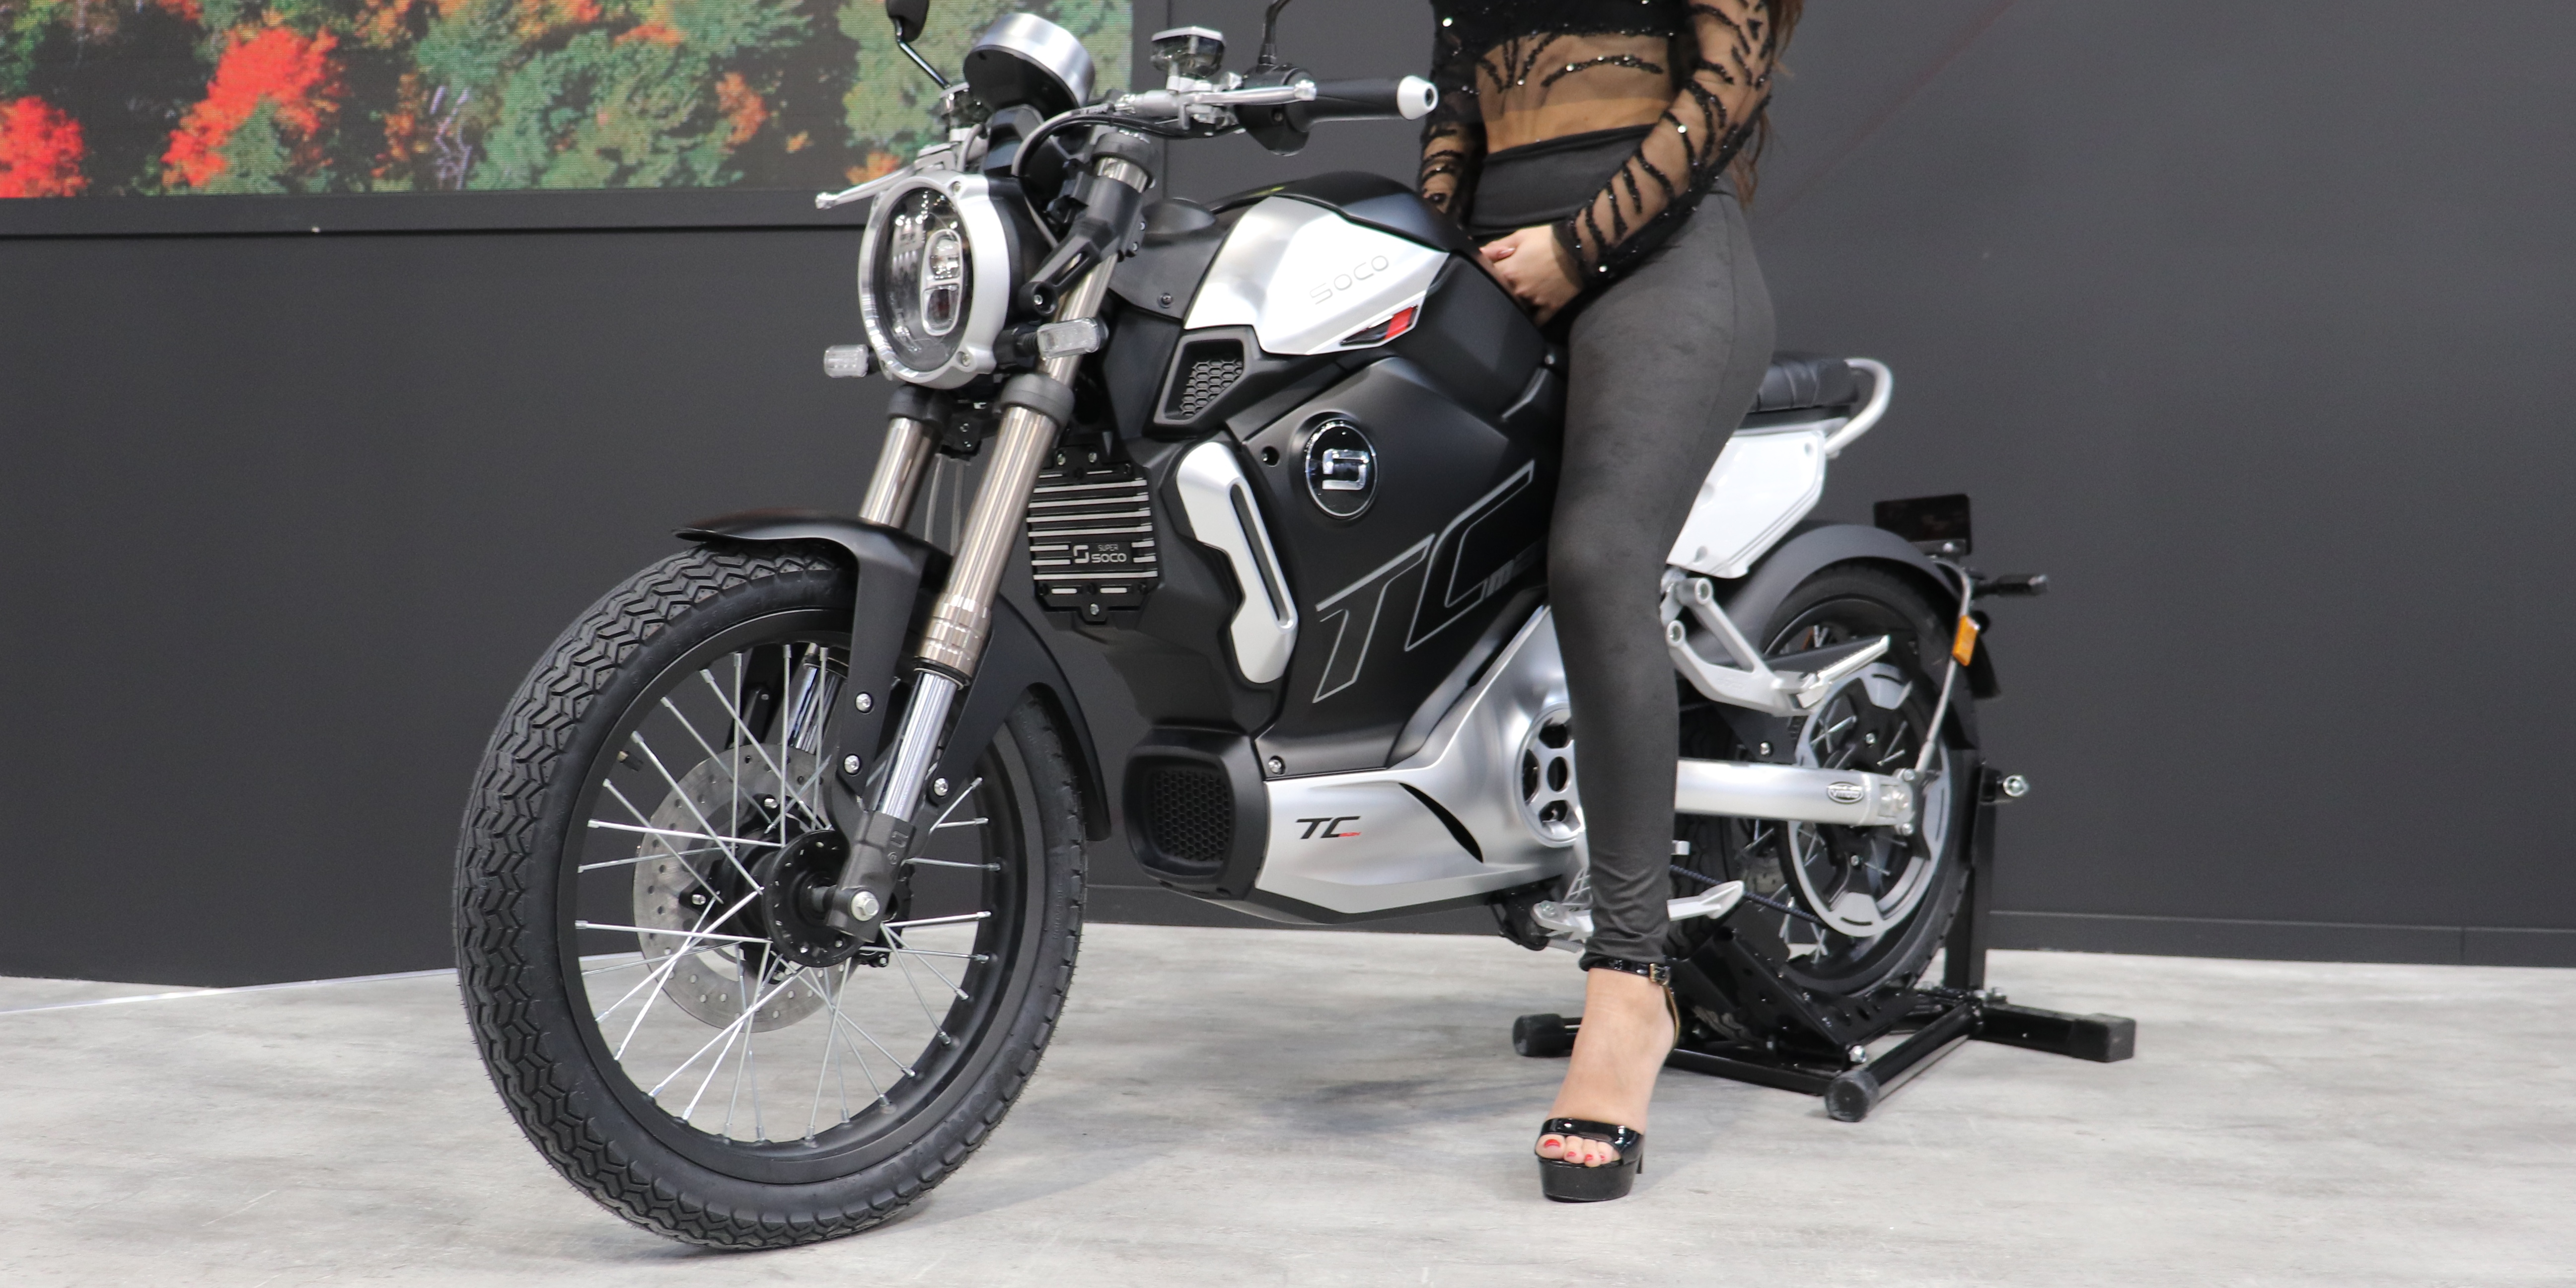 Super SOCO unveils new $5,100 and 62 mph electric motorcycle, the TC MAX